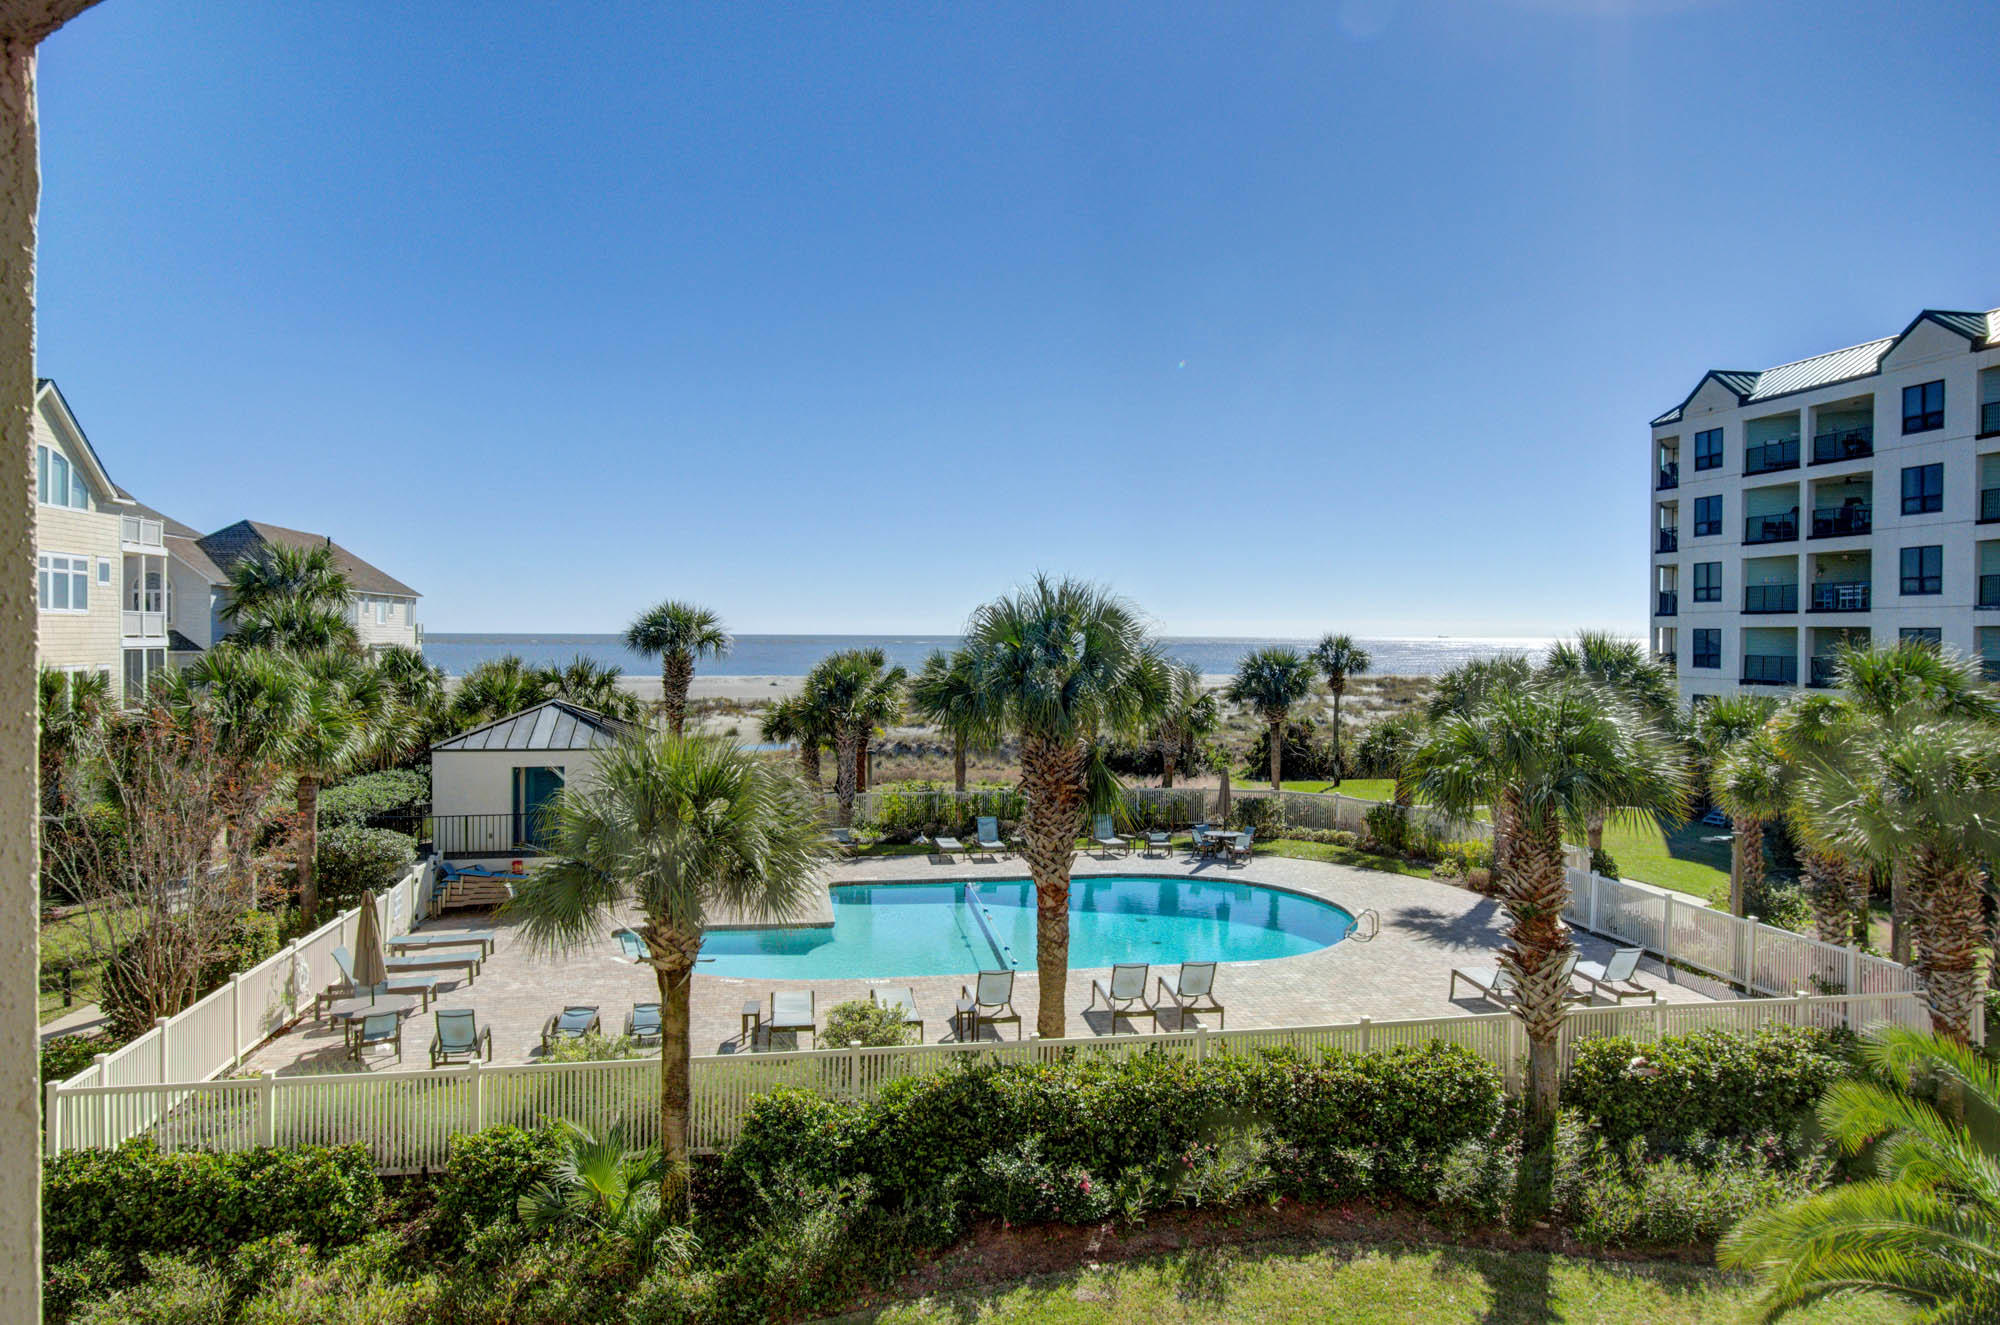 Wild Dunes Homes For Sale - 210 Summerhouse, Isle of Palms, SC - 4